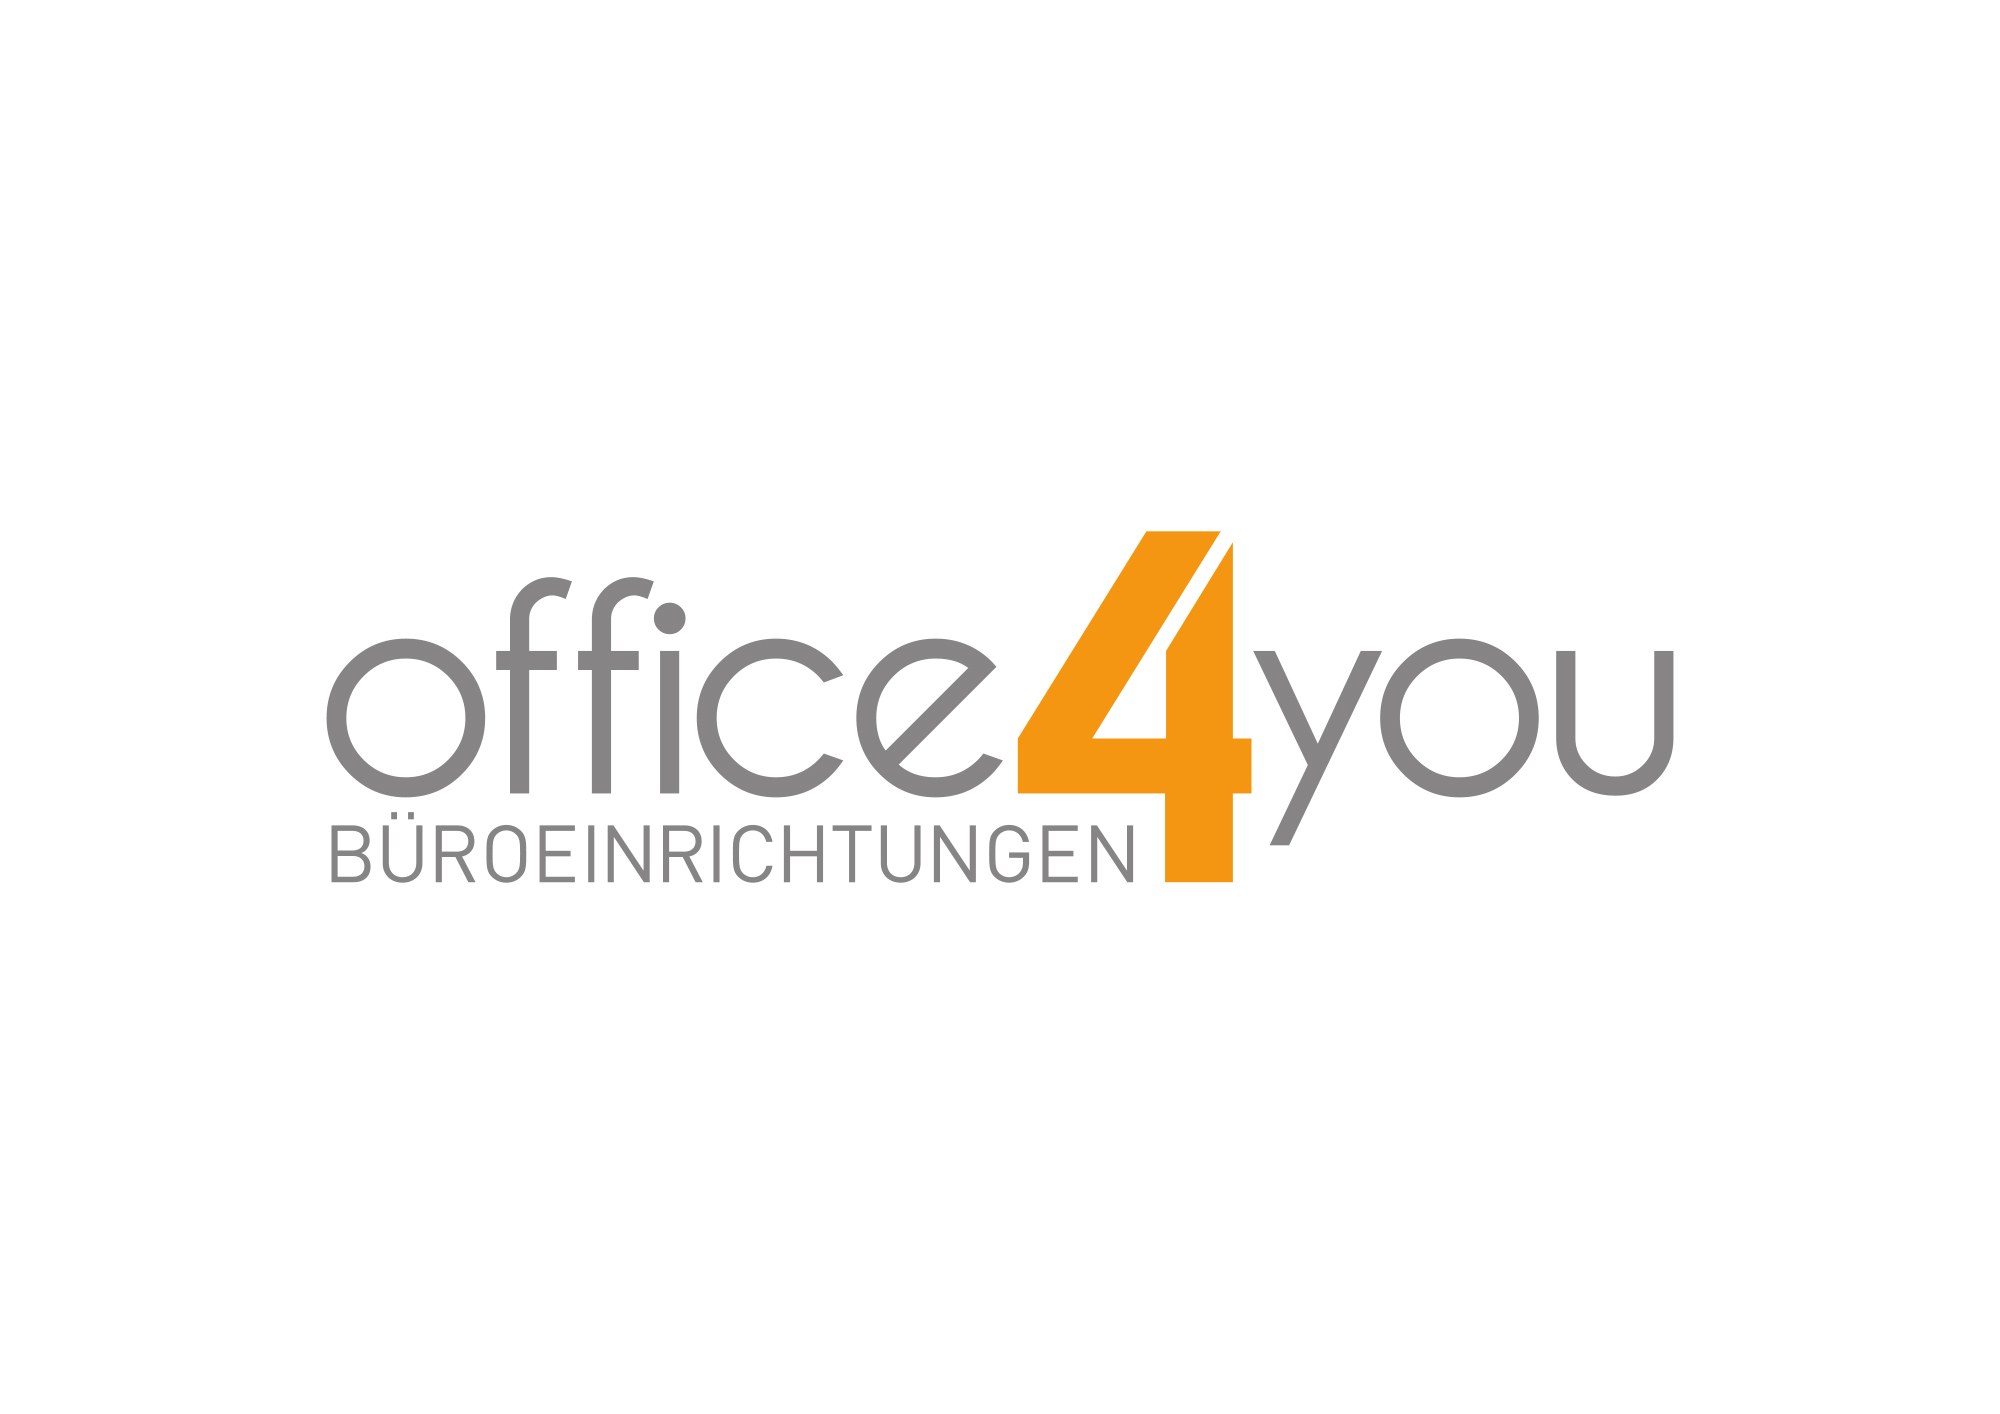 Office4You_Logo.jpg?fit=2000%2C1414